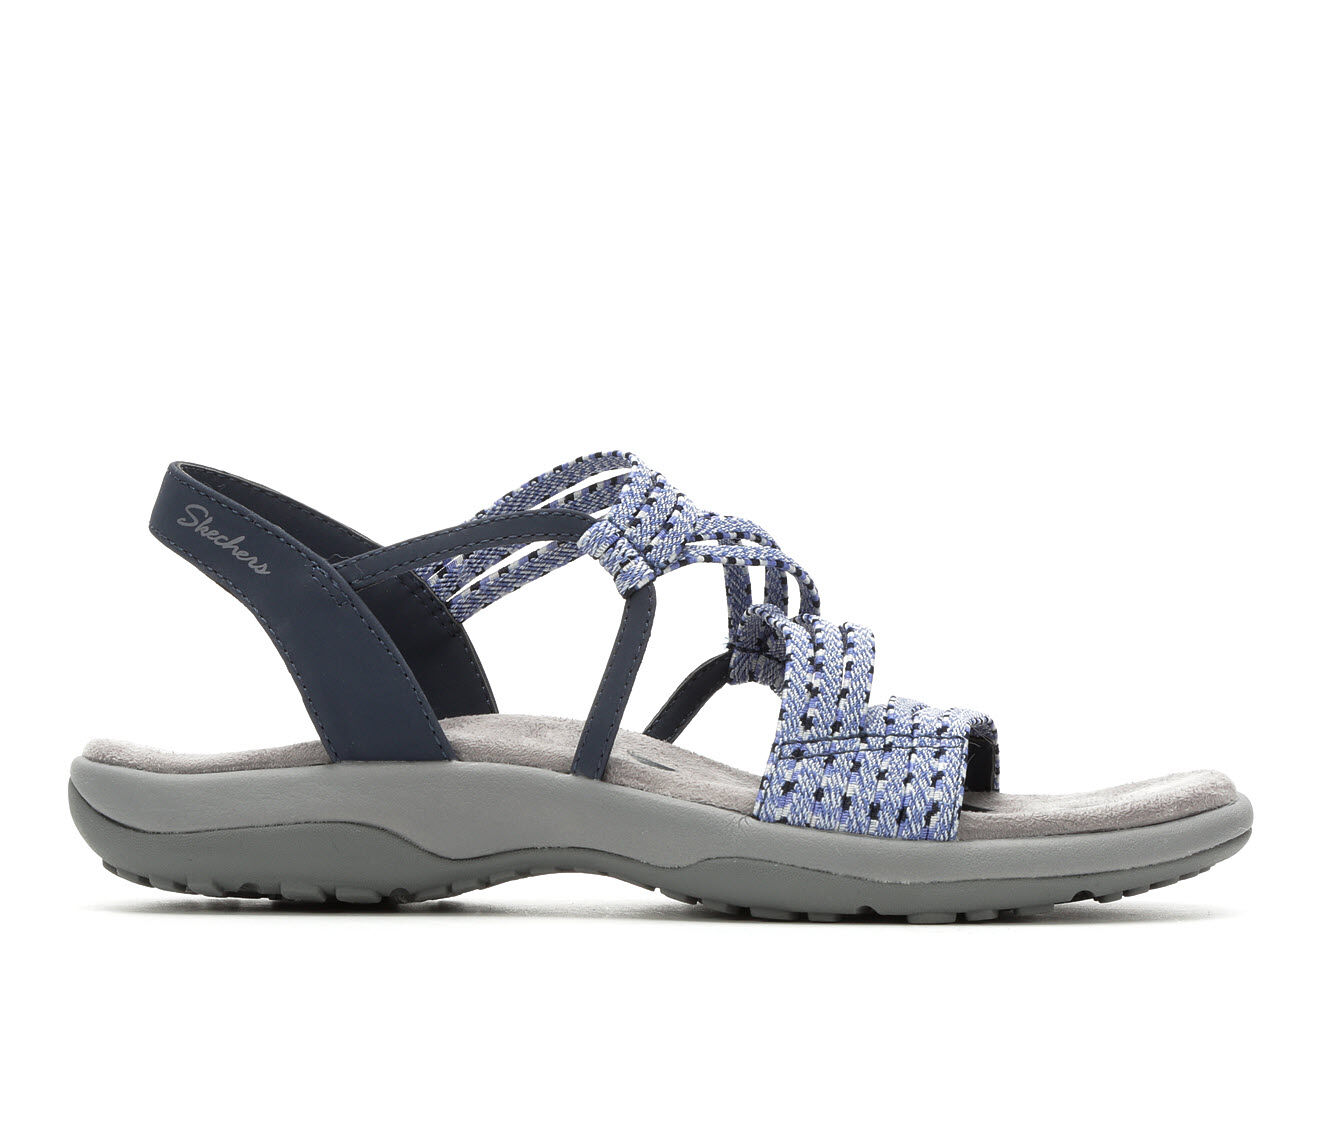 skechers outdoor lifestyle sandals